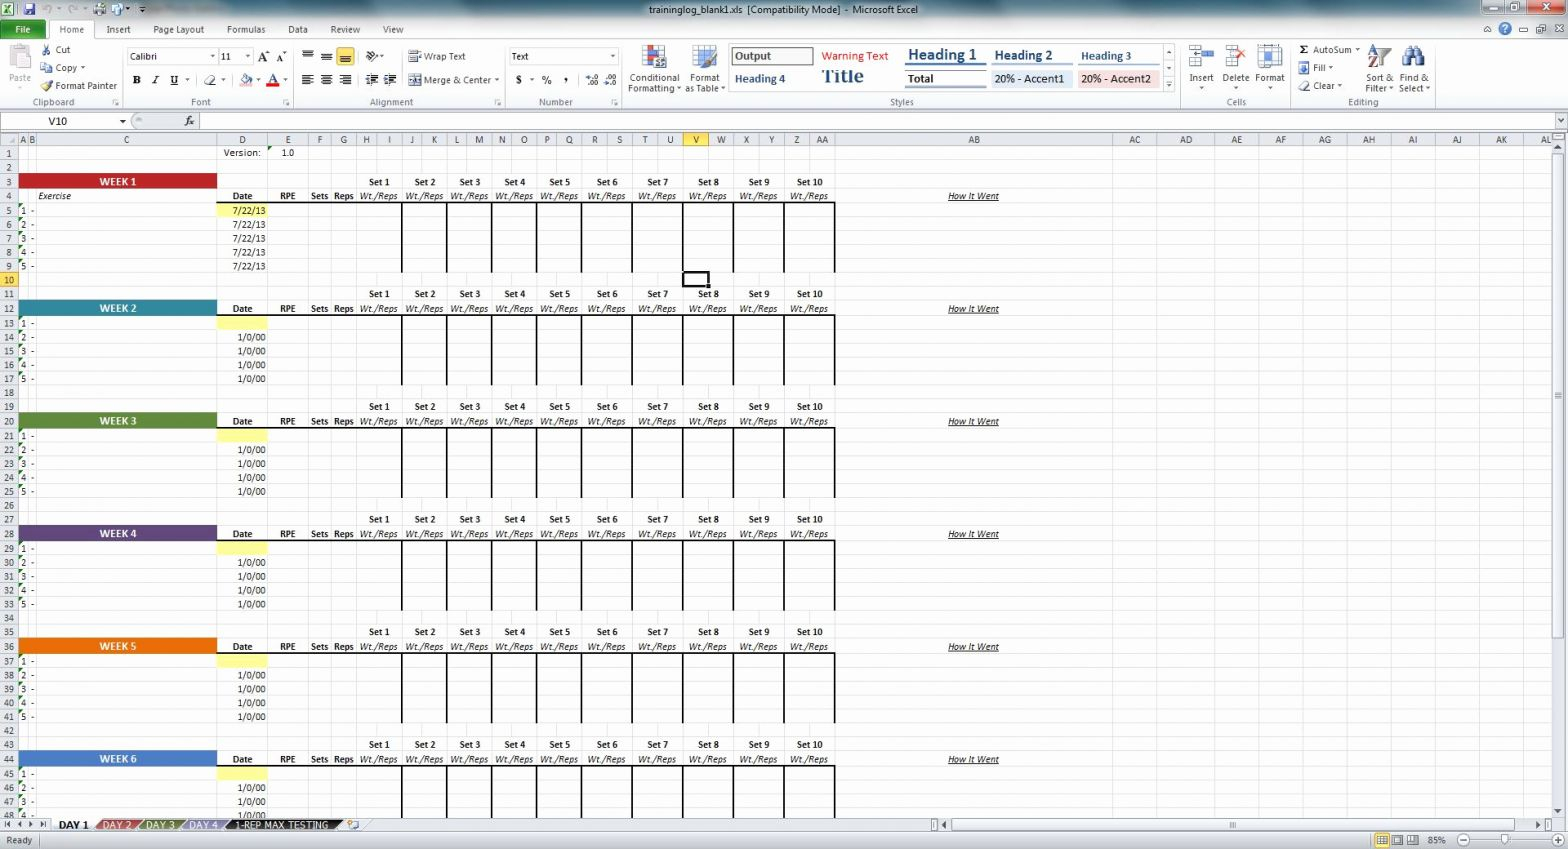 Excel Spreadsheet Training Courses with regard to 18 Excel Spreadsheet Training – Lodeling